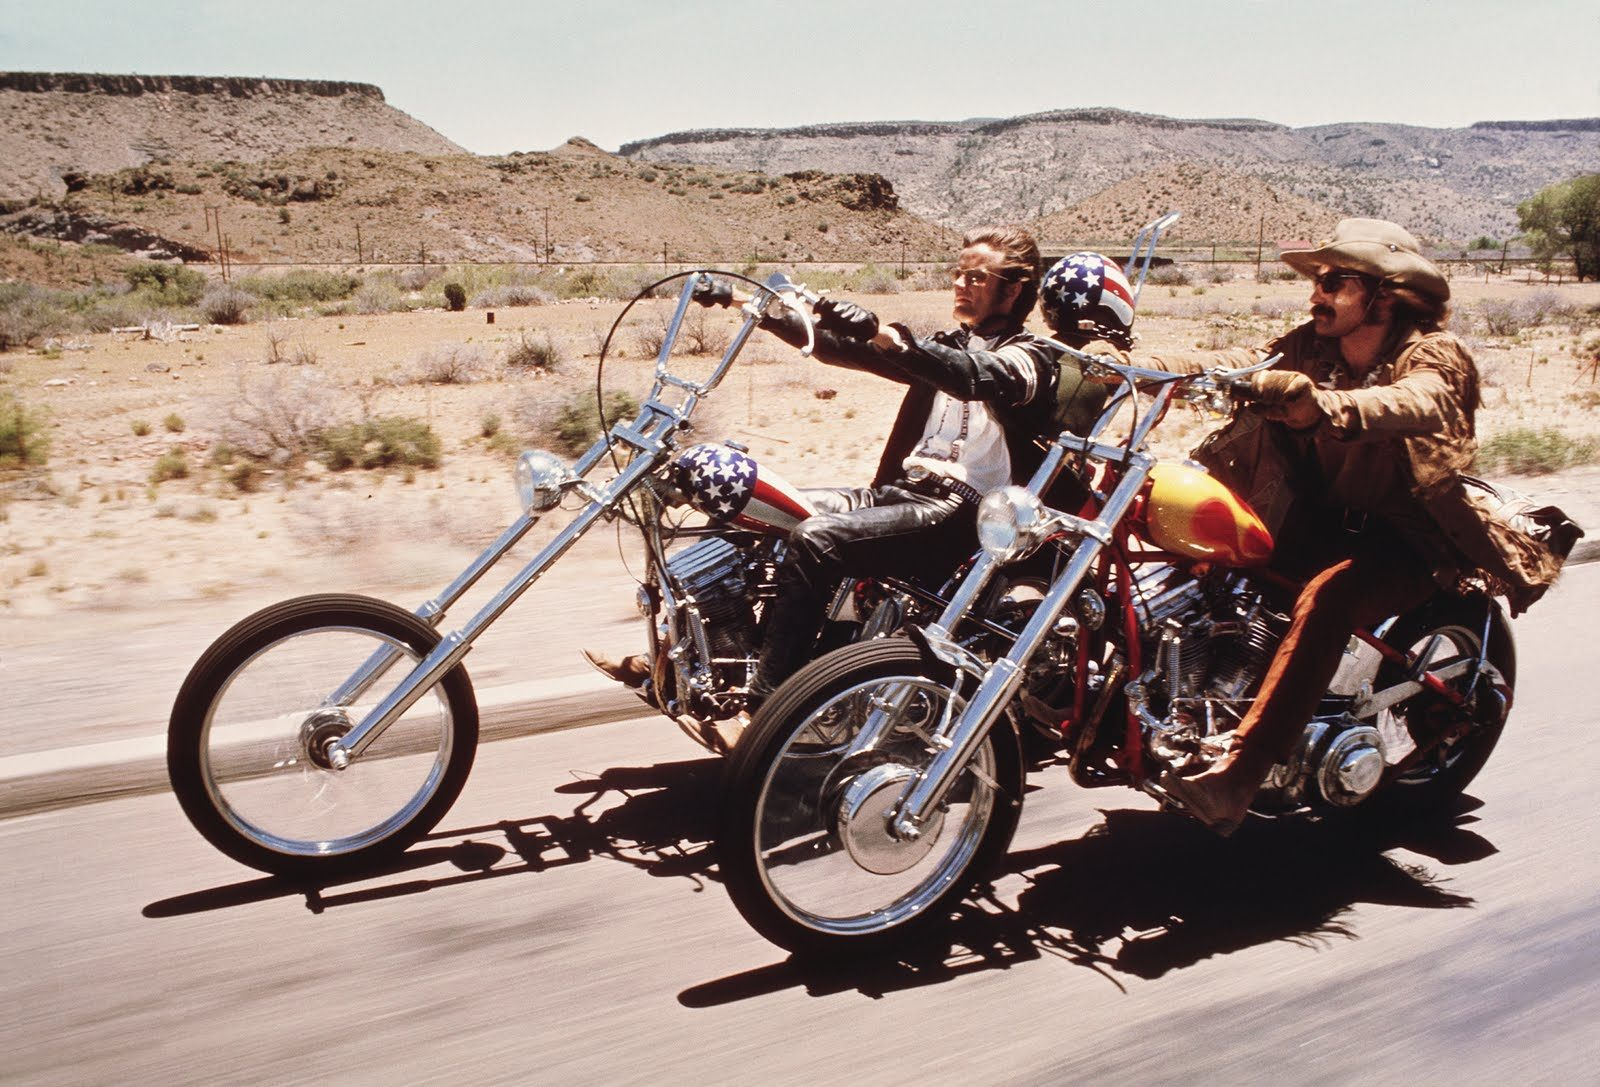 the cast of EAsy Rider on their motorcycles in the desert